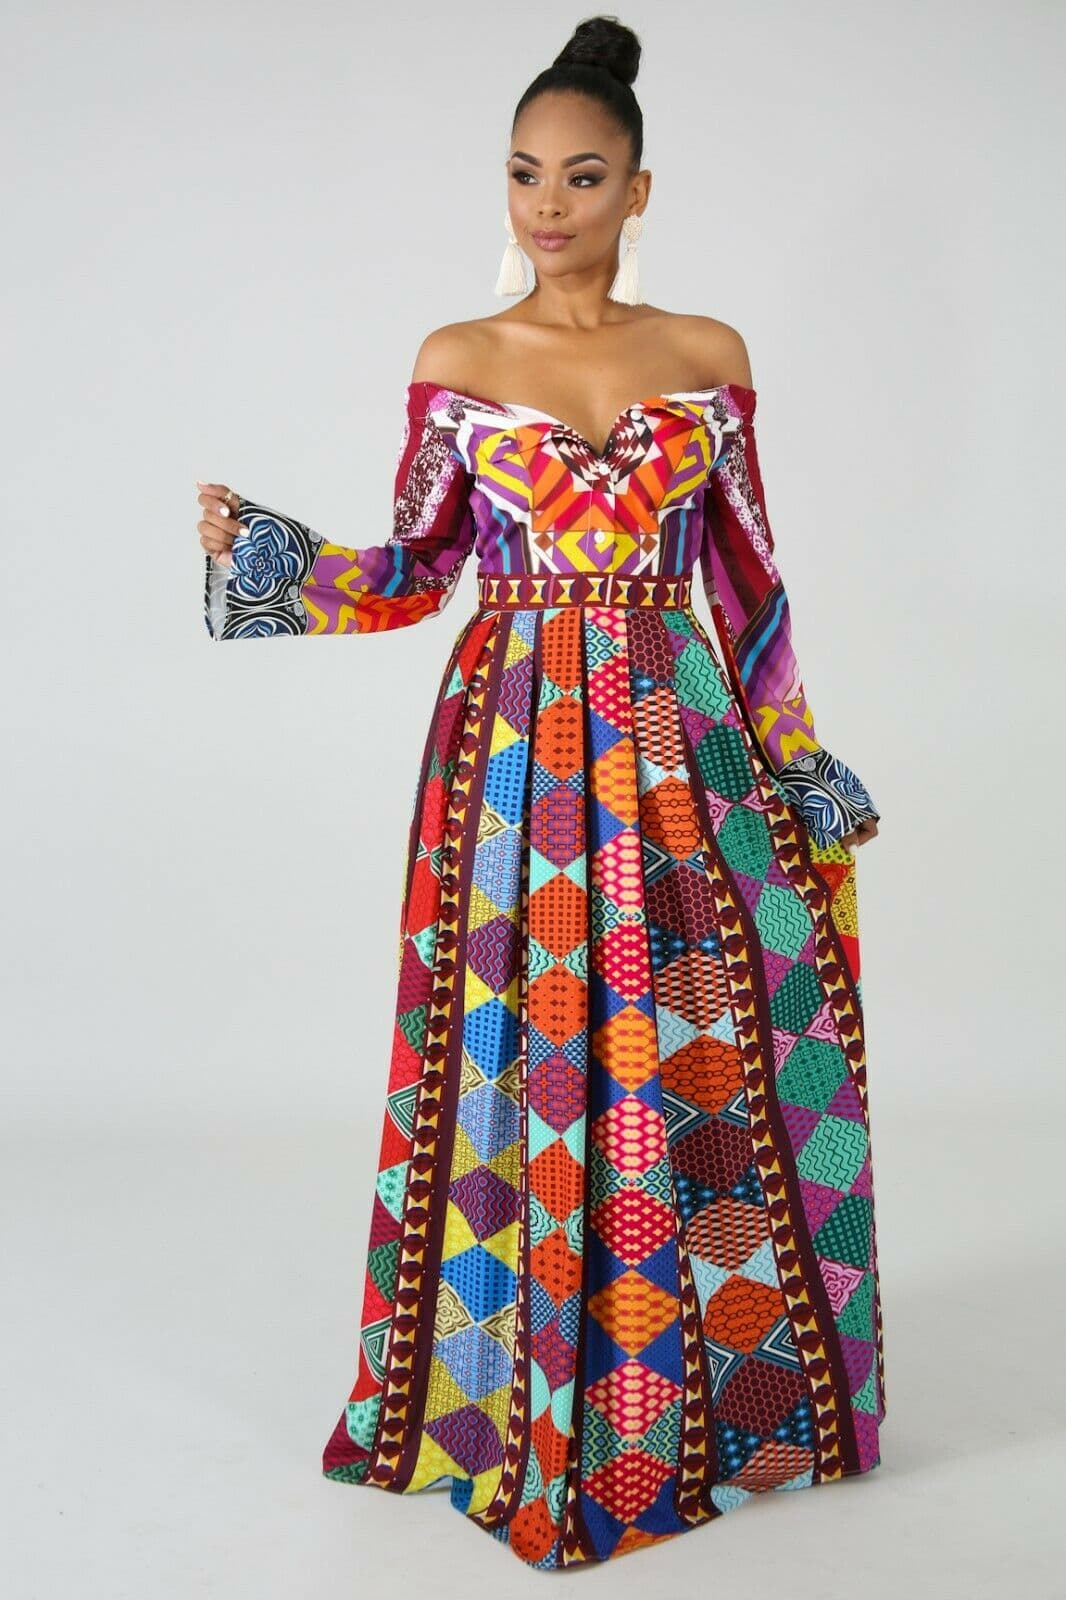 8dbd036c0a22d Who would have thought that African print clothes would look this good?  Check out this